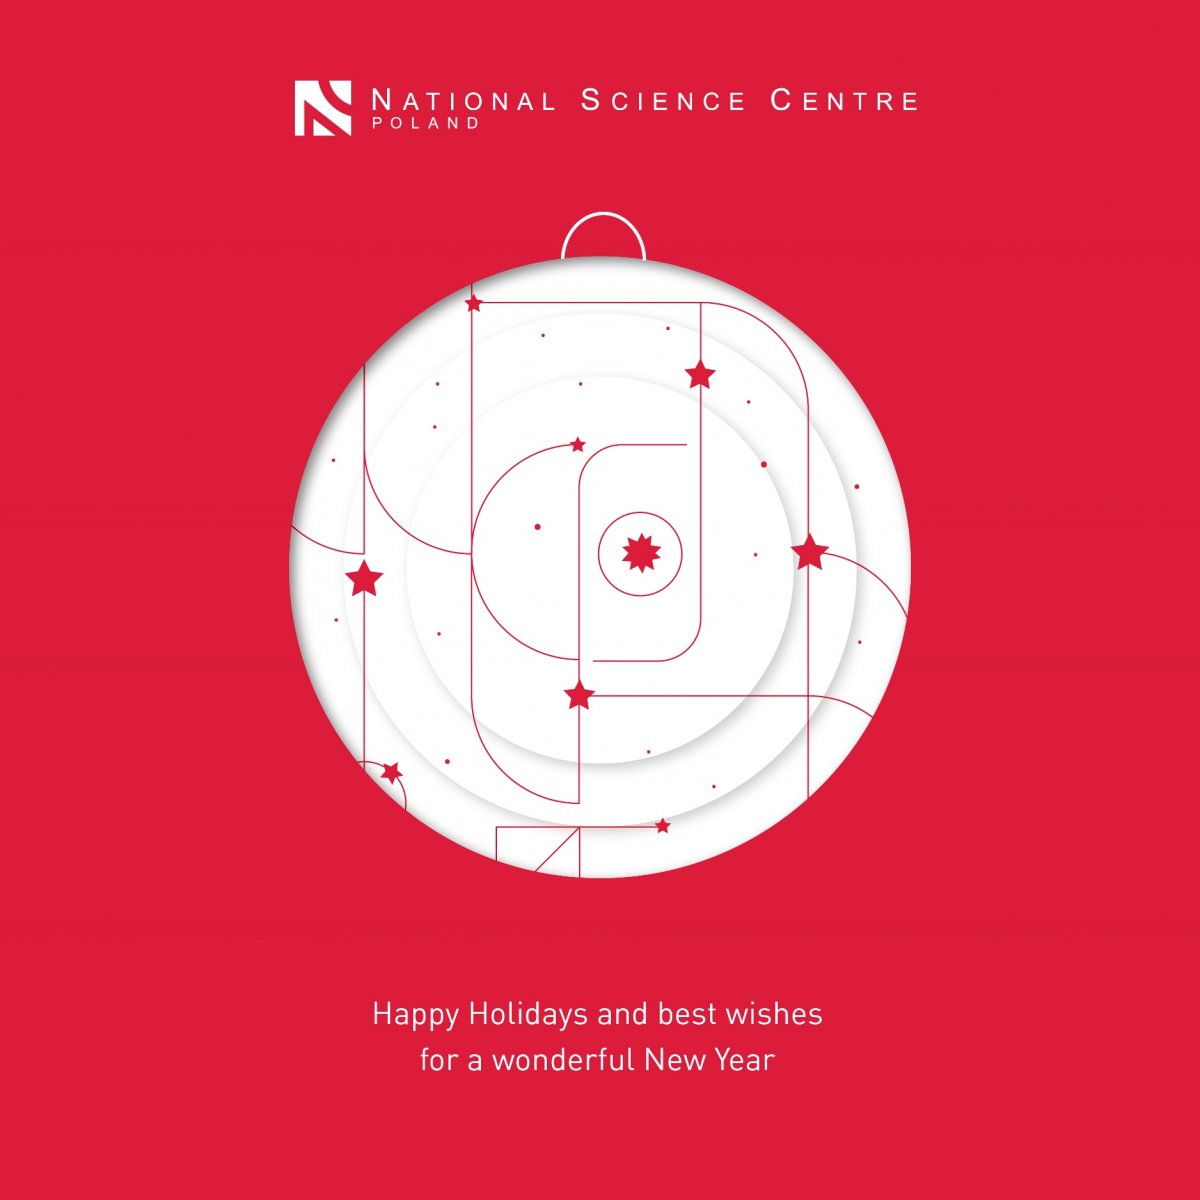 National Science Centre wish You Happy Holidays and best wishes for a wonderful New Year